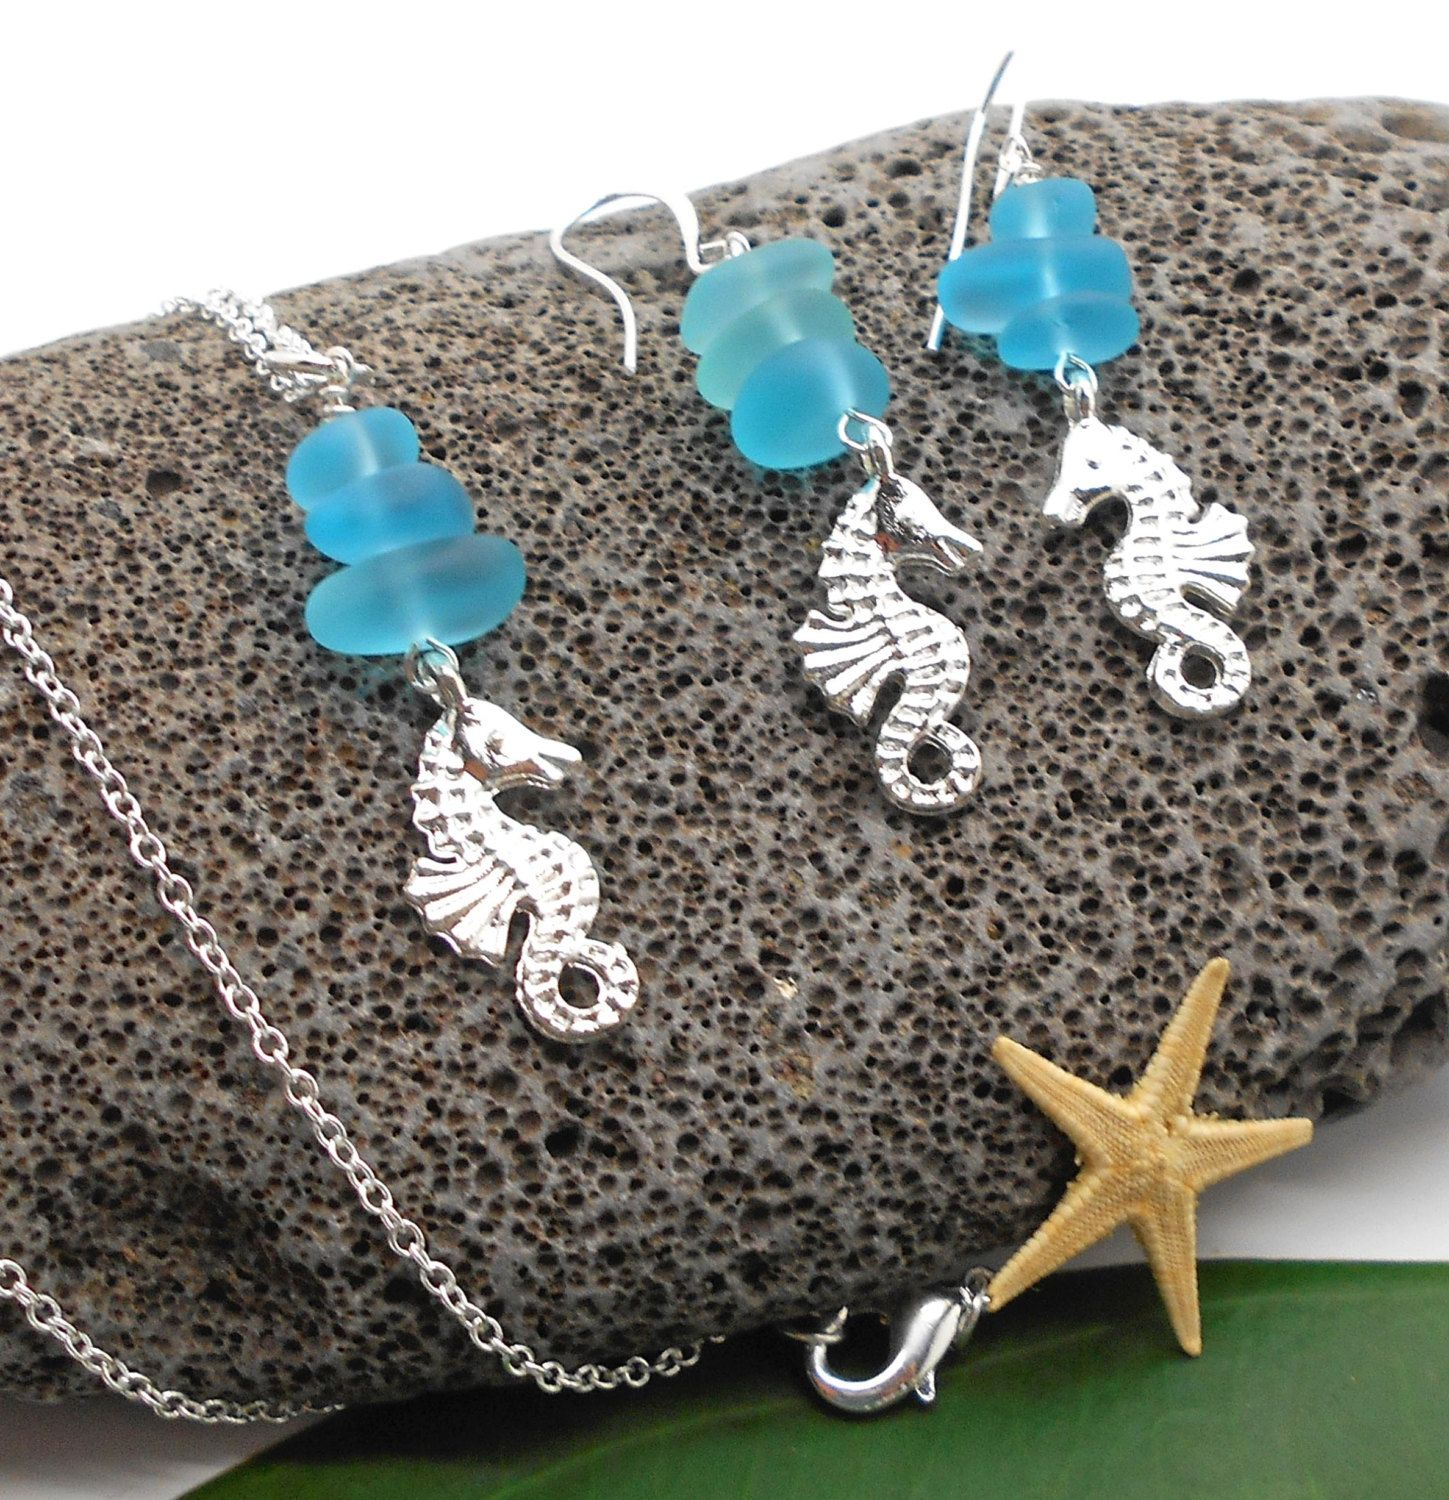 Seahorse Necklace And Earring Set With Turquoise Beach Gl Shell Jewelry Wedding Sea Horse By Haolehaiku On